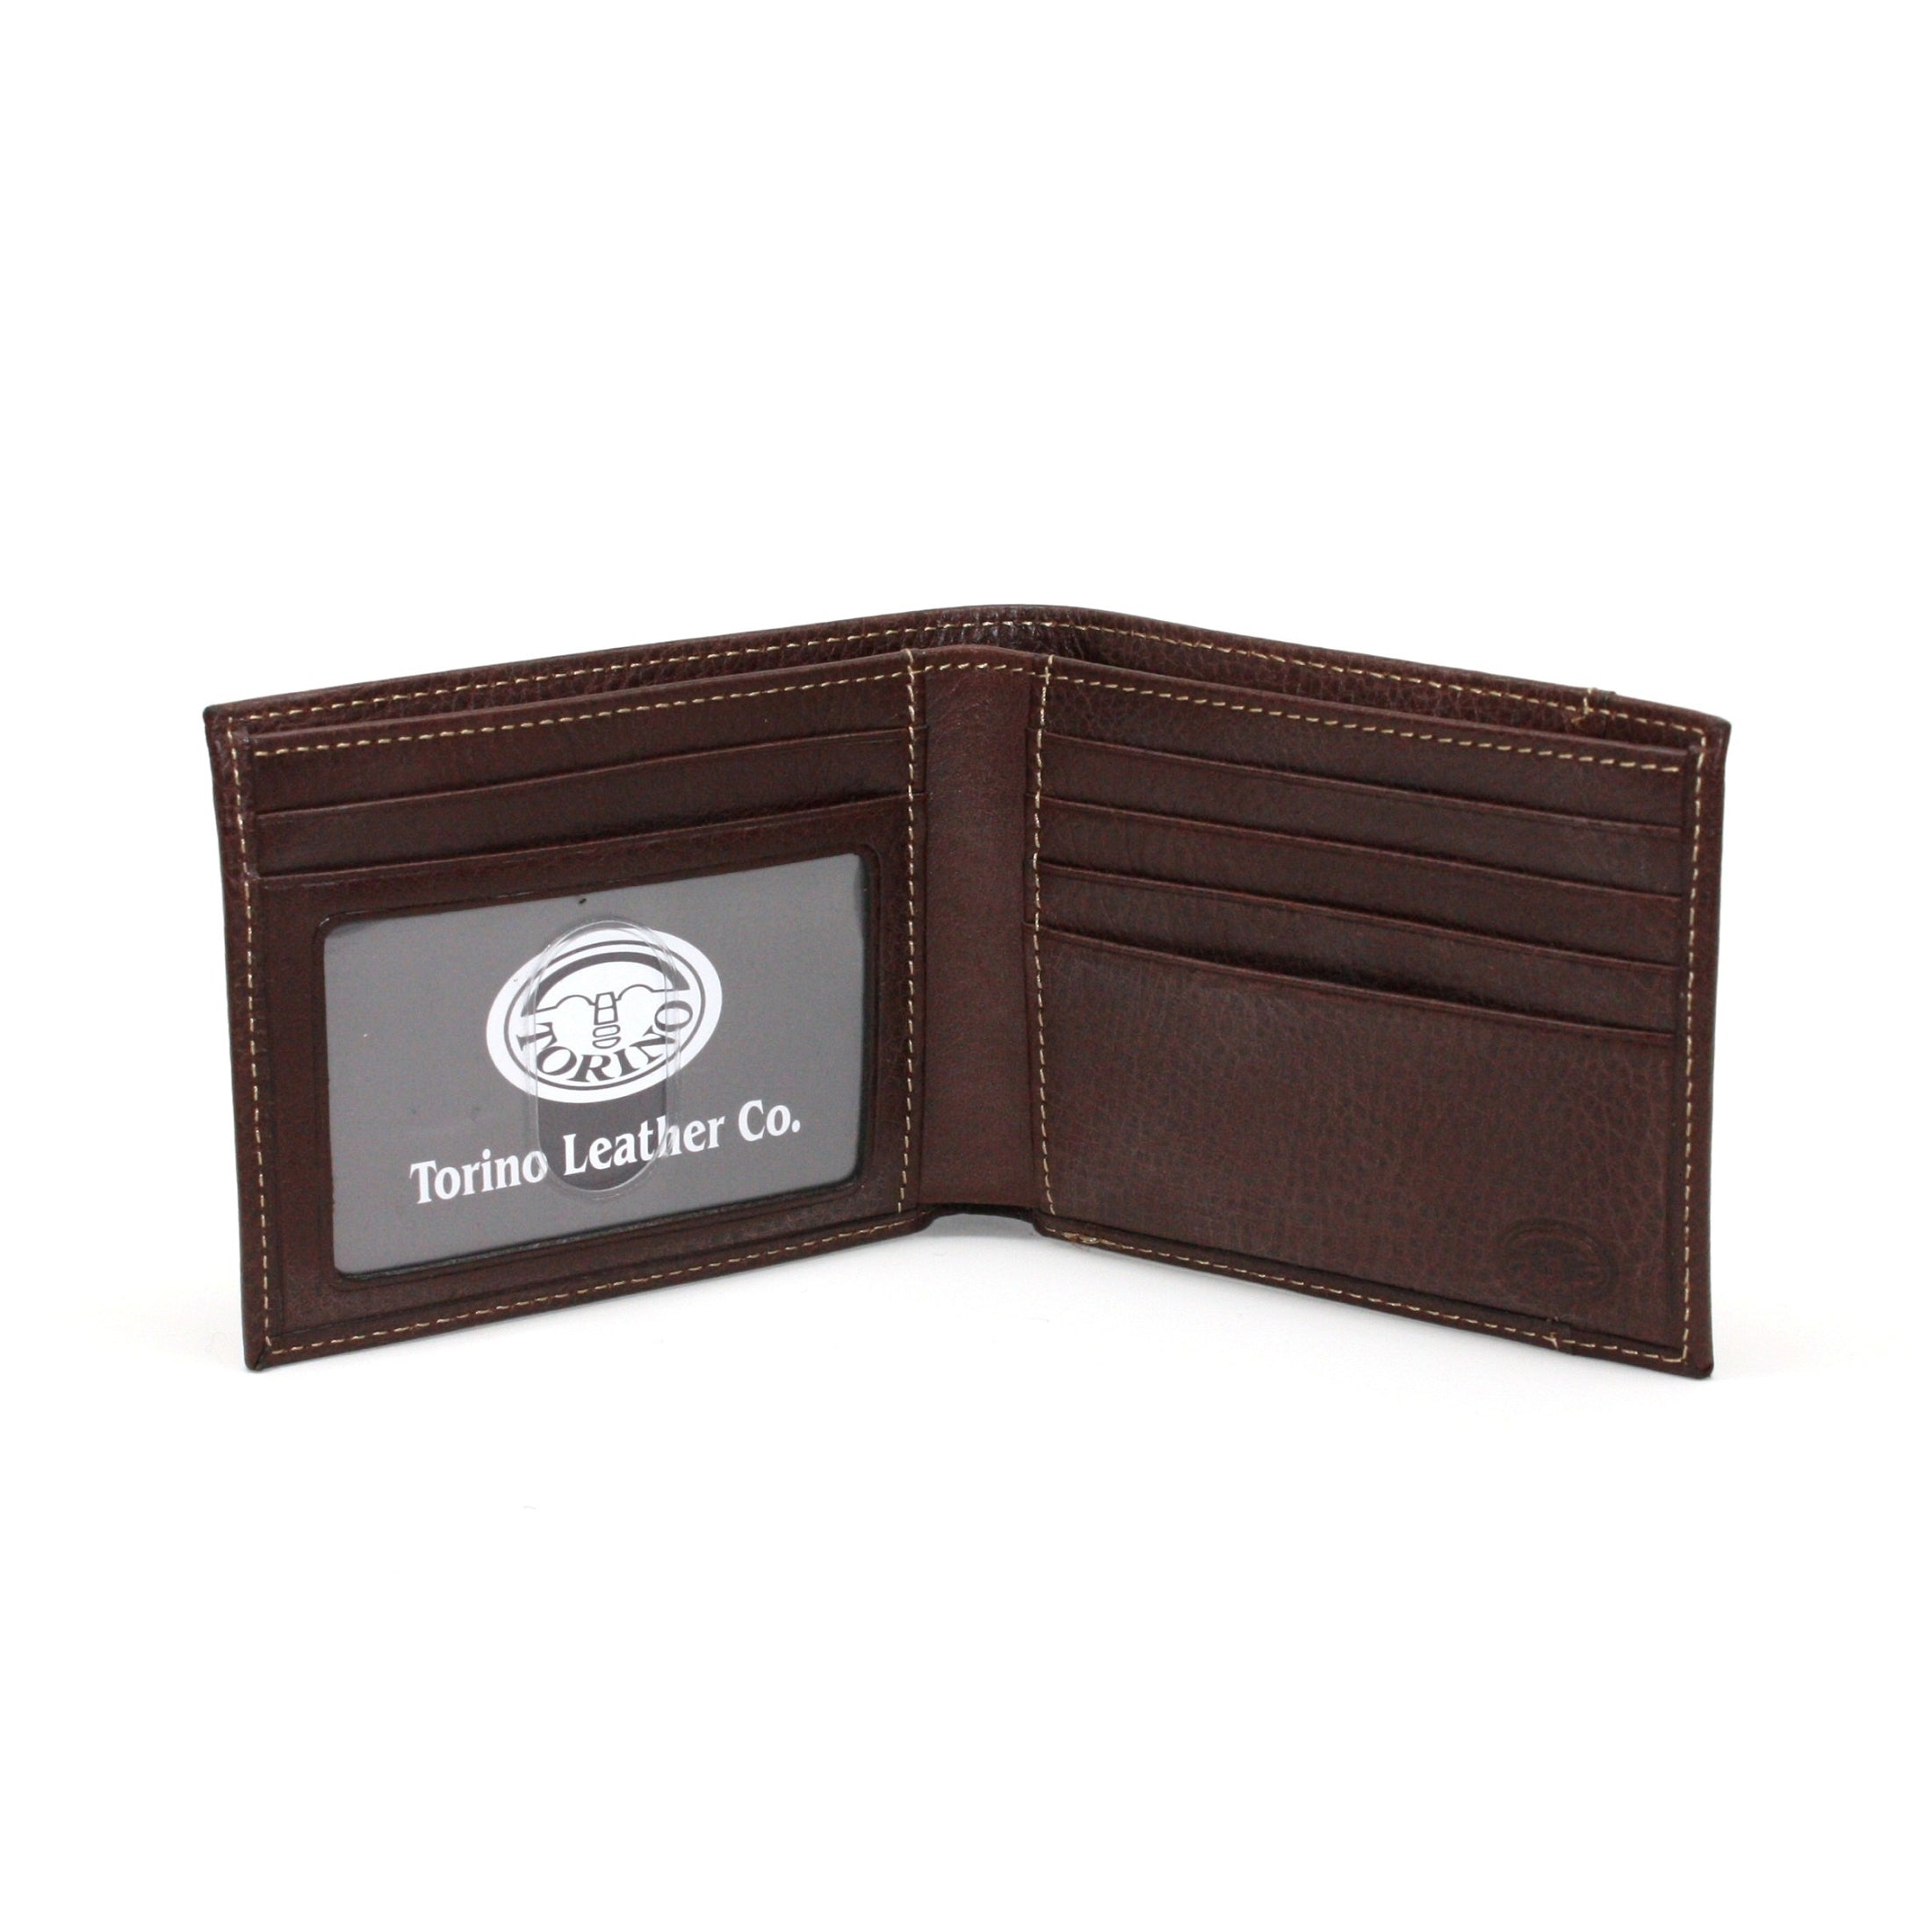 Tumbled Glove Leather Billfold Wallet - Brown